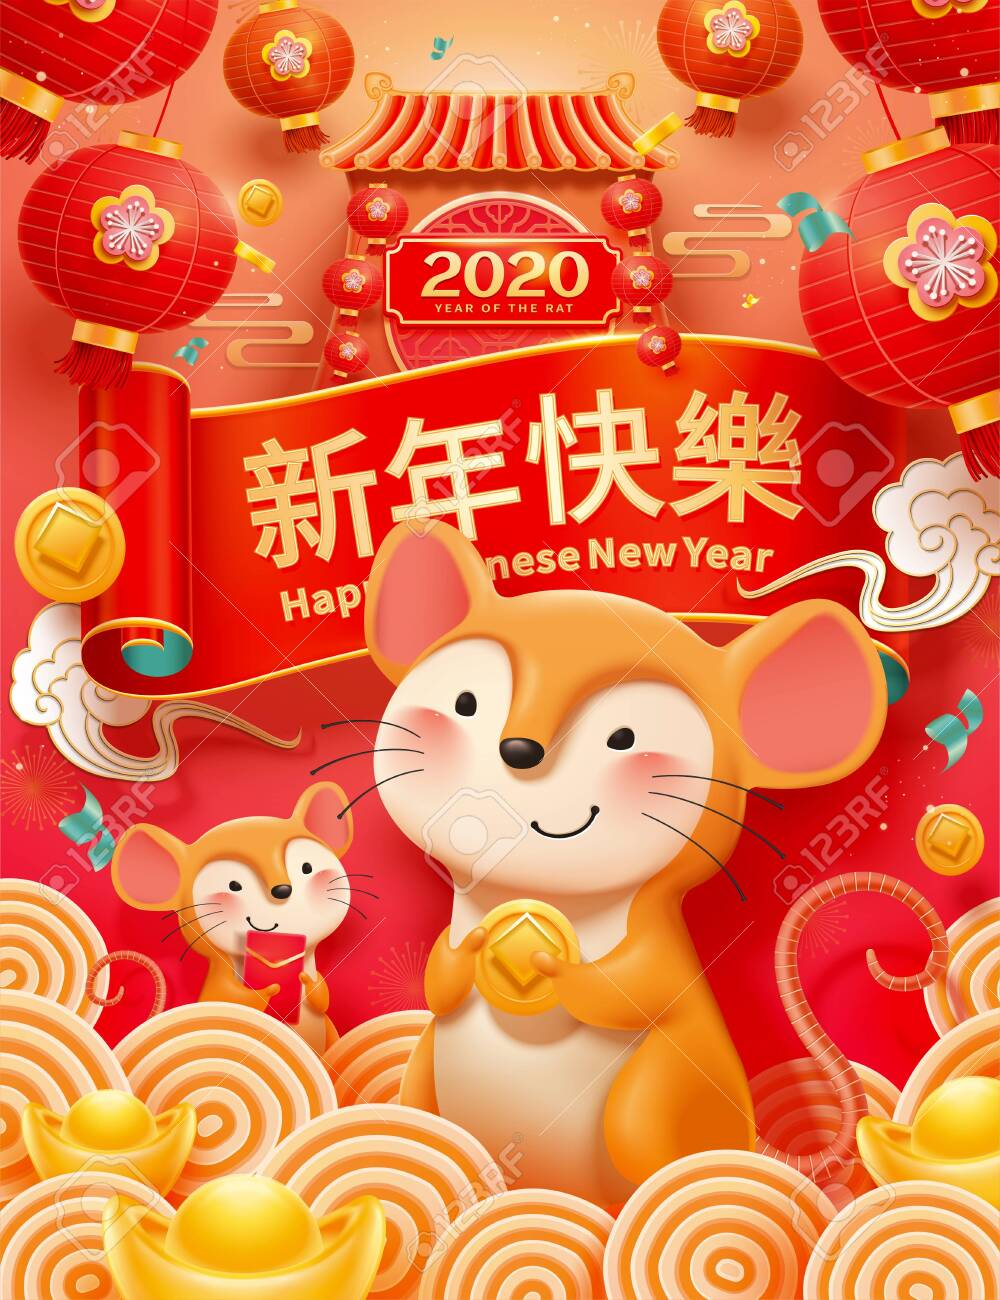 Chinese year of the rat holding golden coins on red background - 133374580